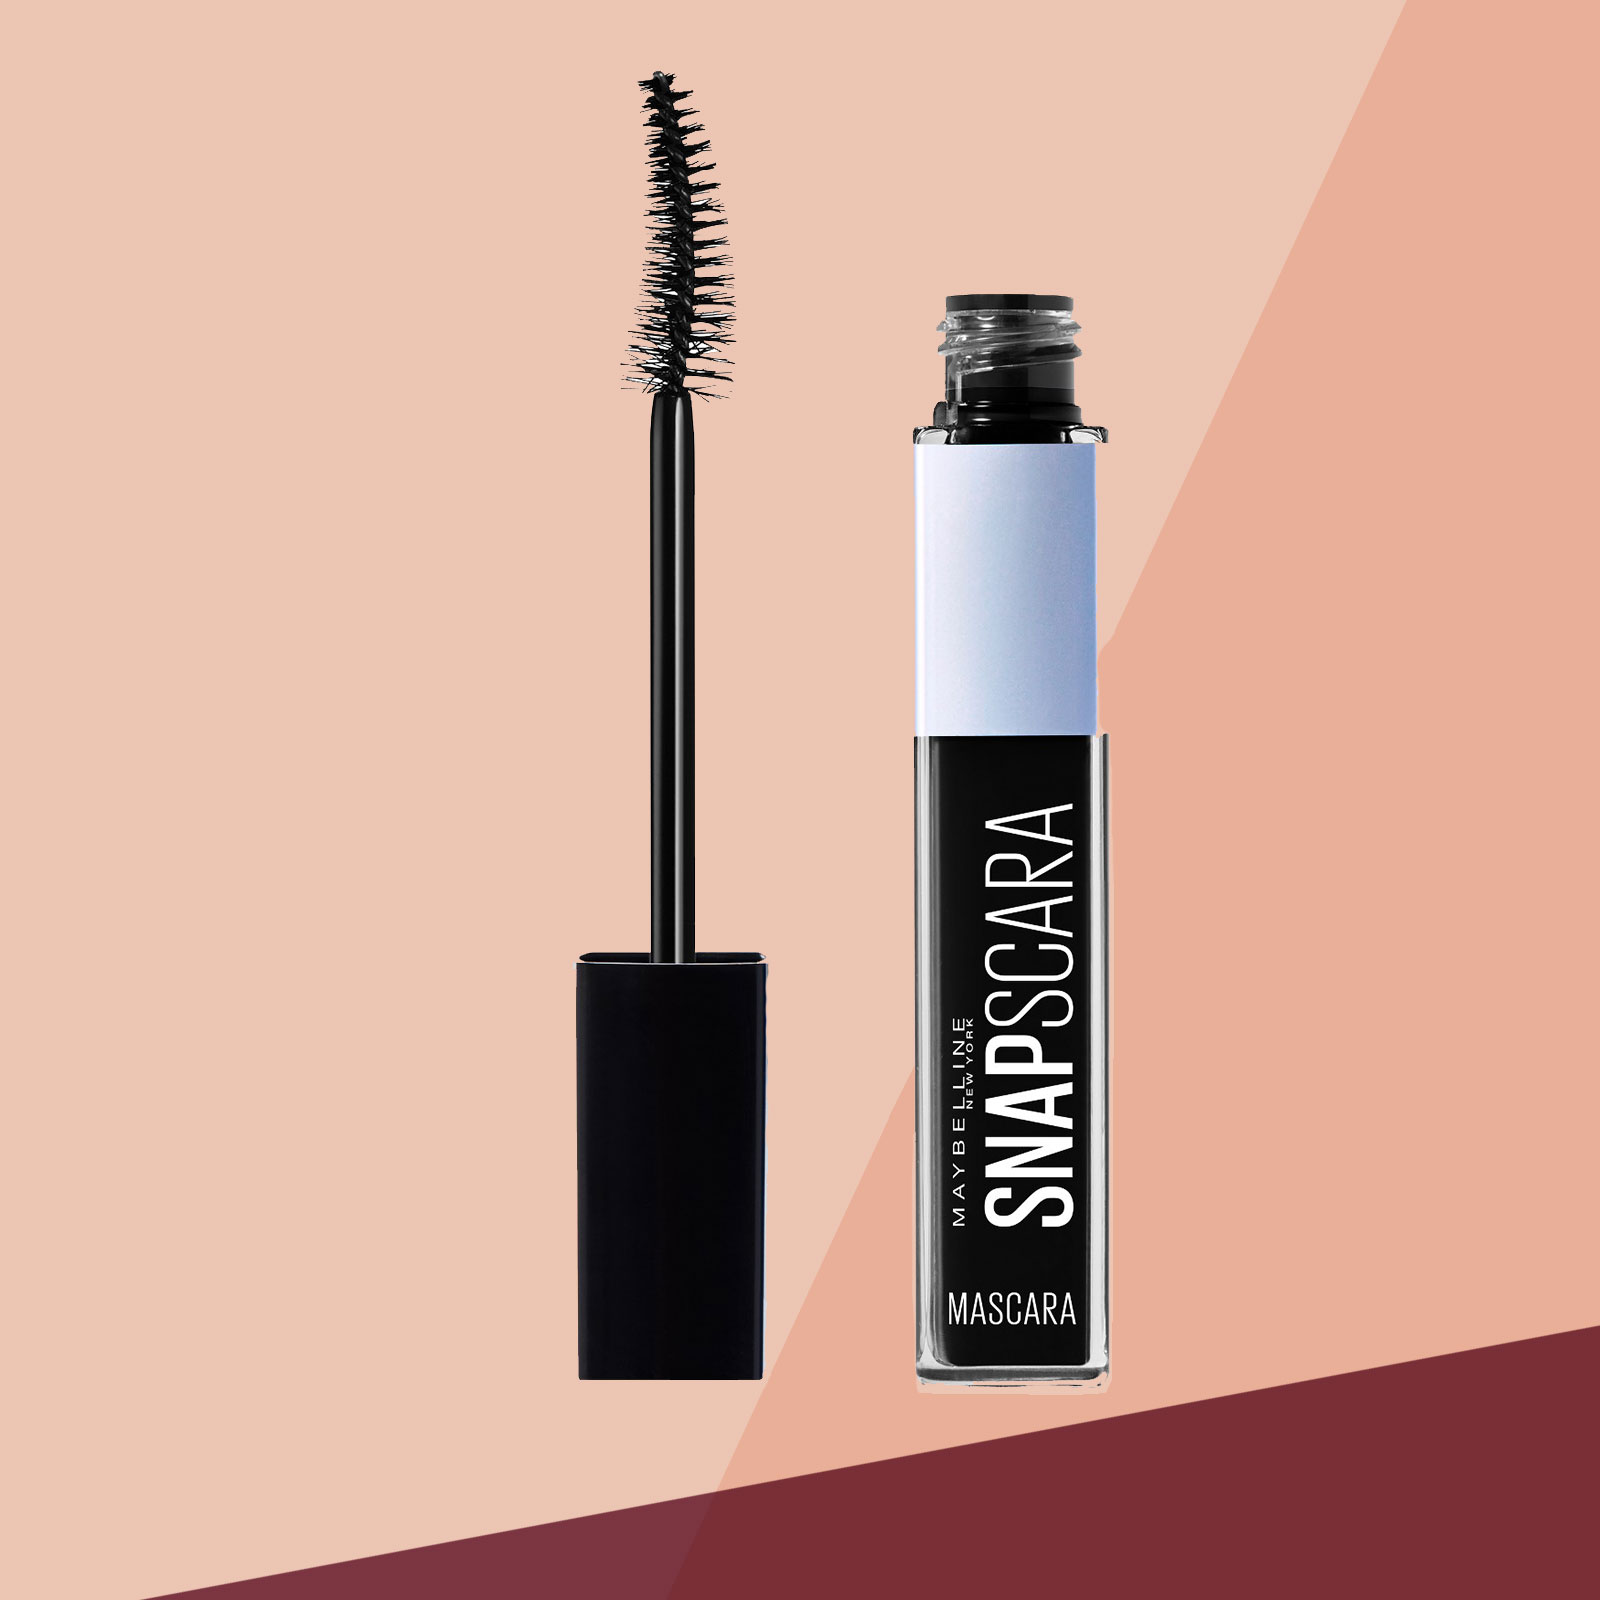 This $6 Mascara Stays on All Day, and It's So Easy to Remove